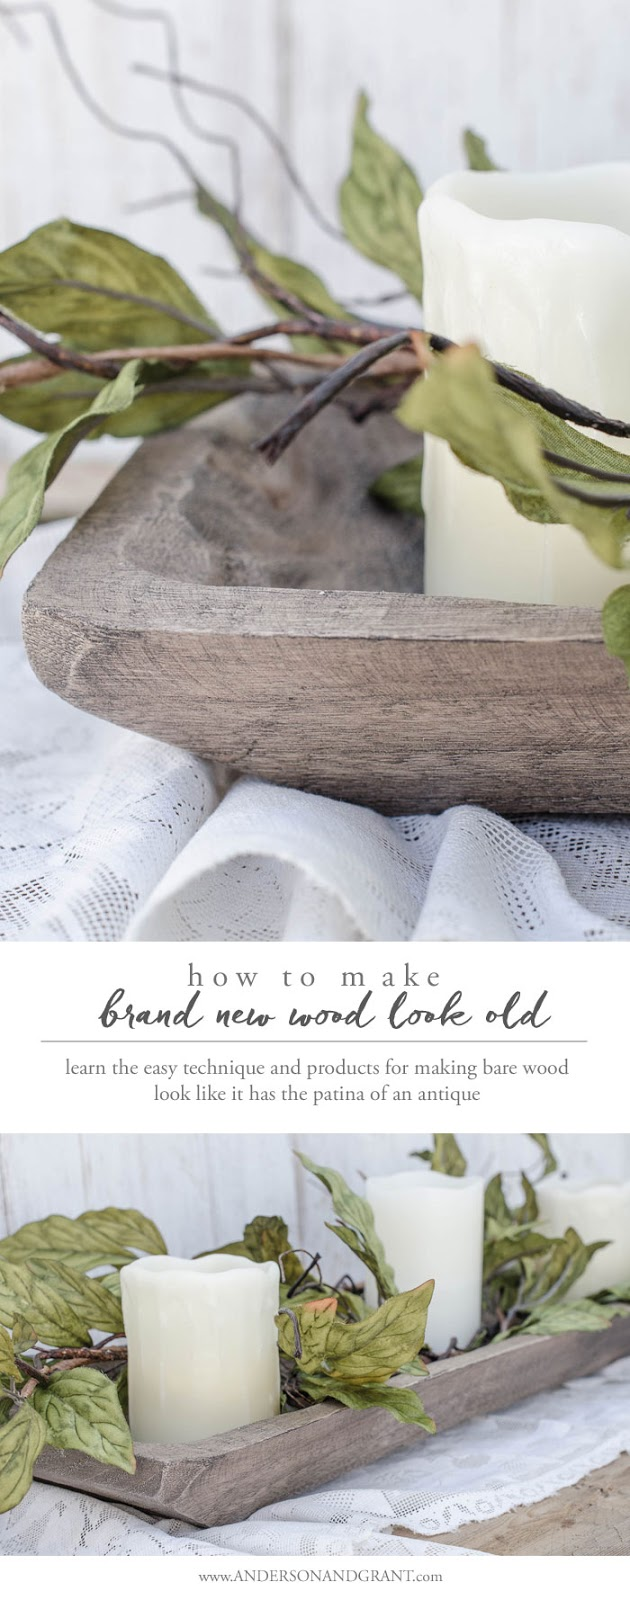 This brand new dough bowl from Hobby Lobby got an easy aging treatment to look old and rustic.  Click for the tutorial #DIY #furniturepainting #wood #doughbowl #andersonandgrant